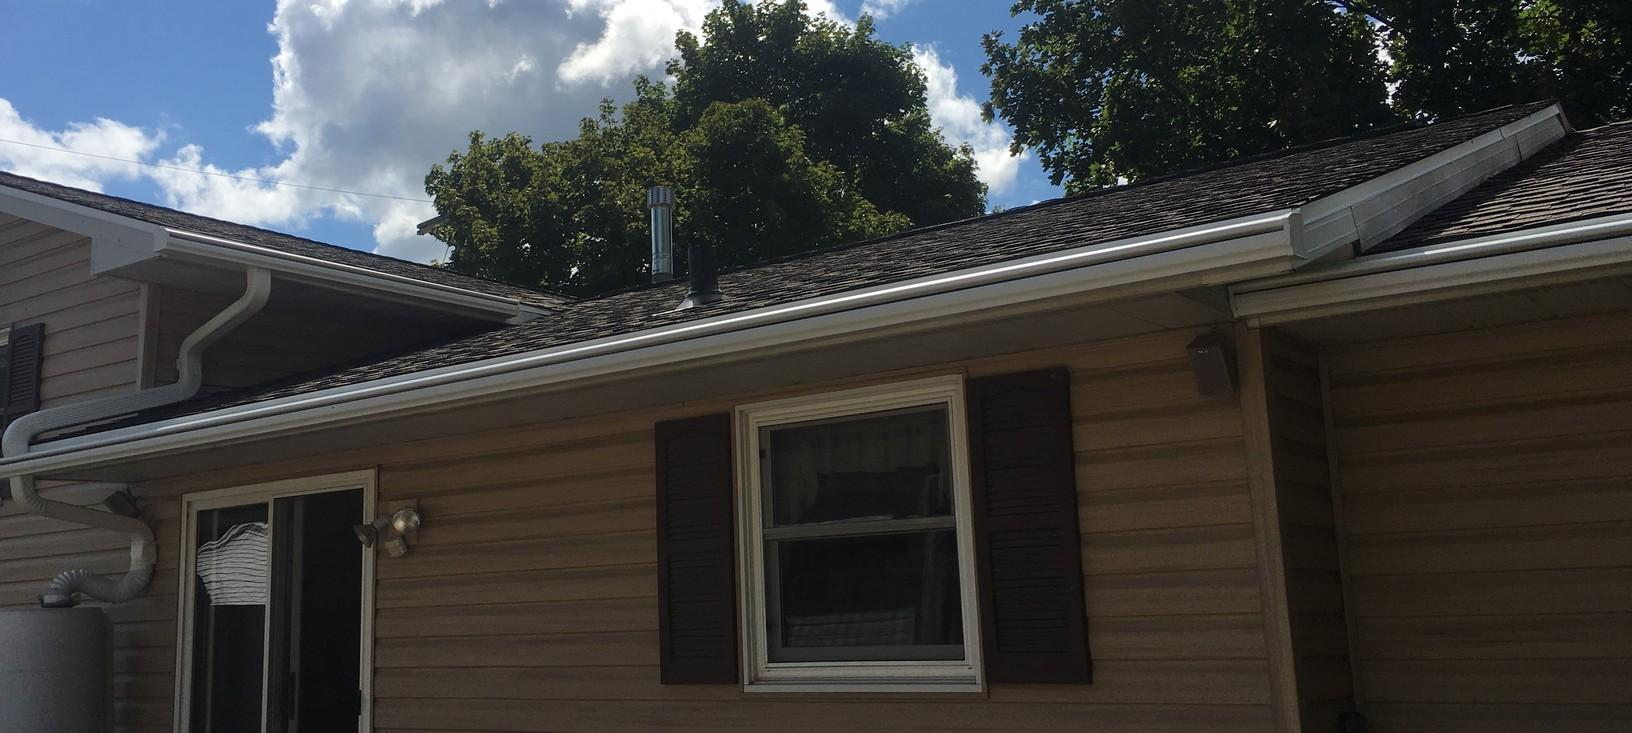 GAF Master Elite Asphalt Shingle Roof on Home in Kimberly, WI - Before Photo